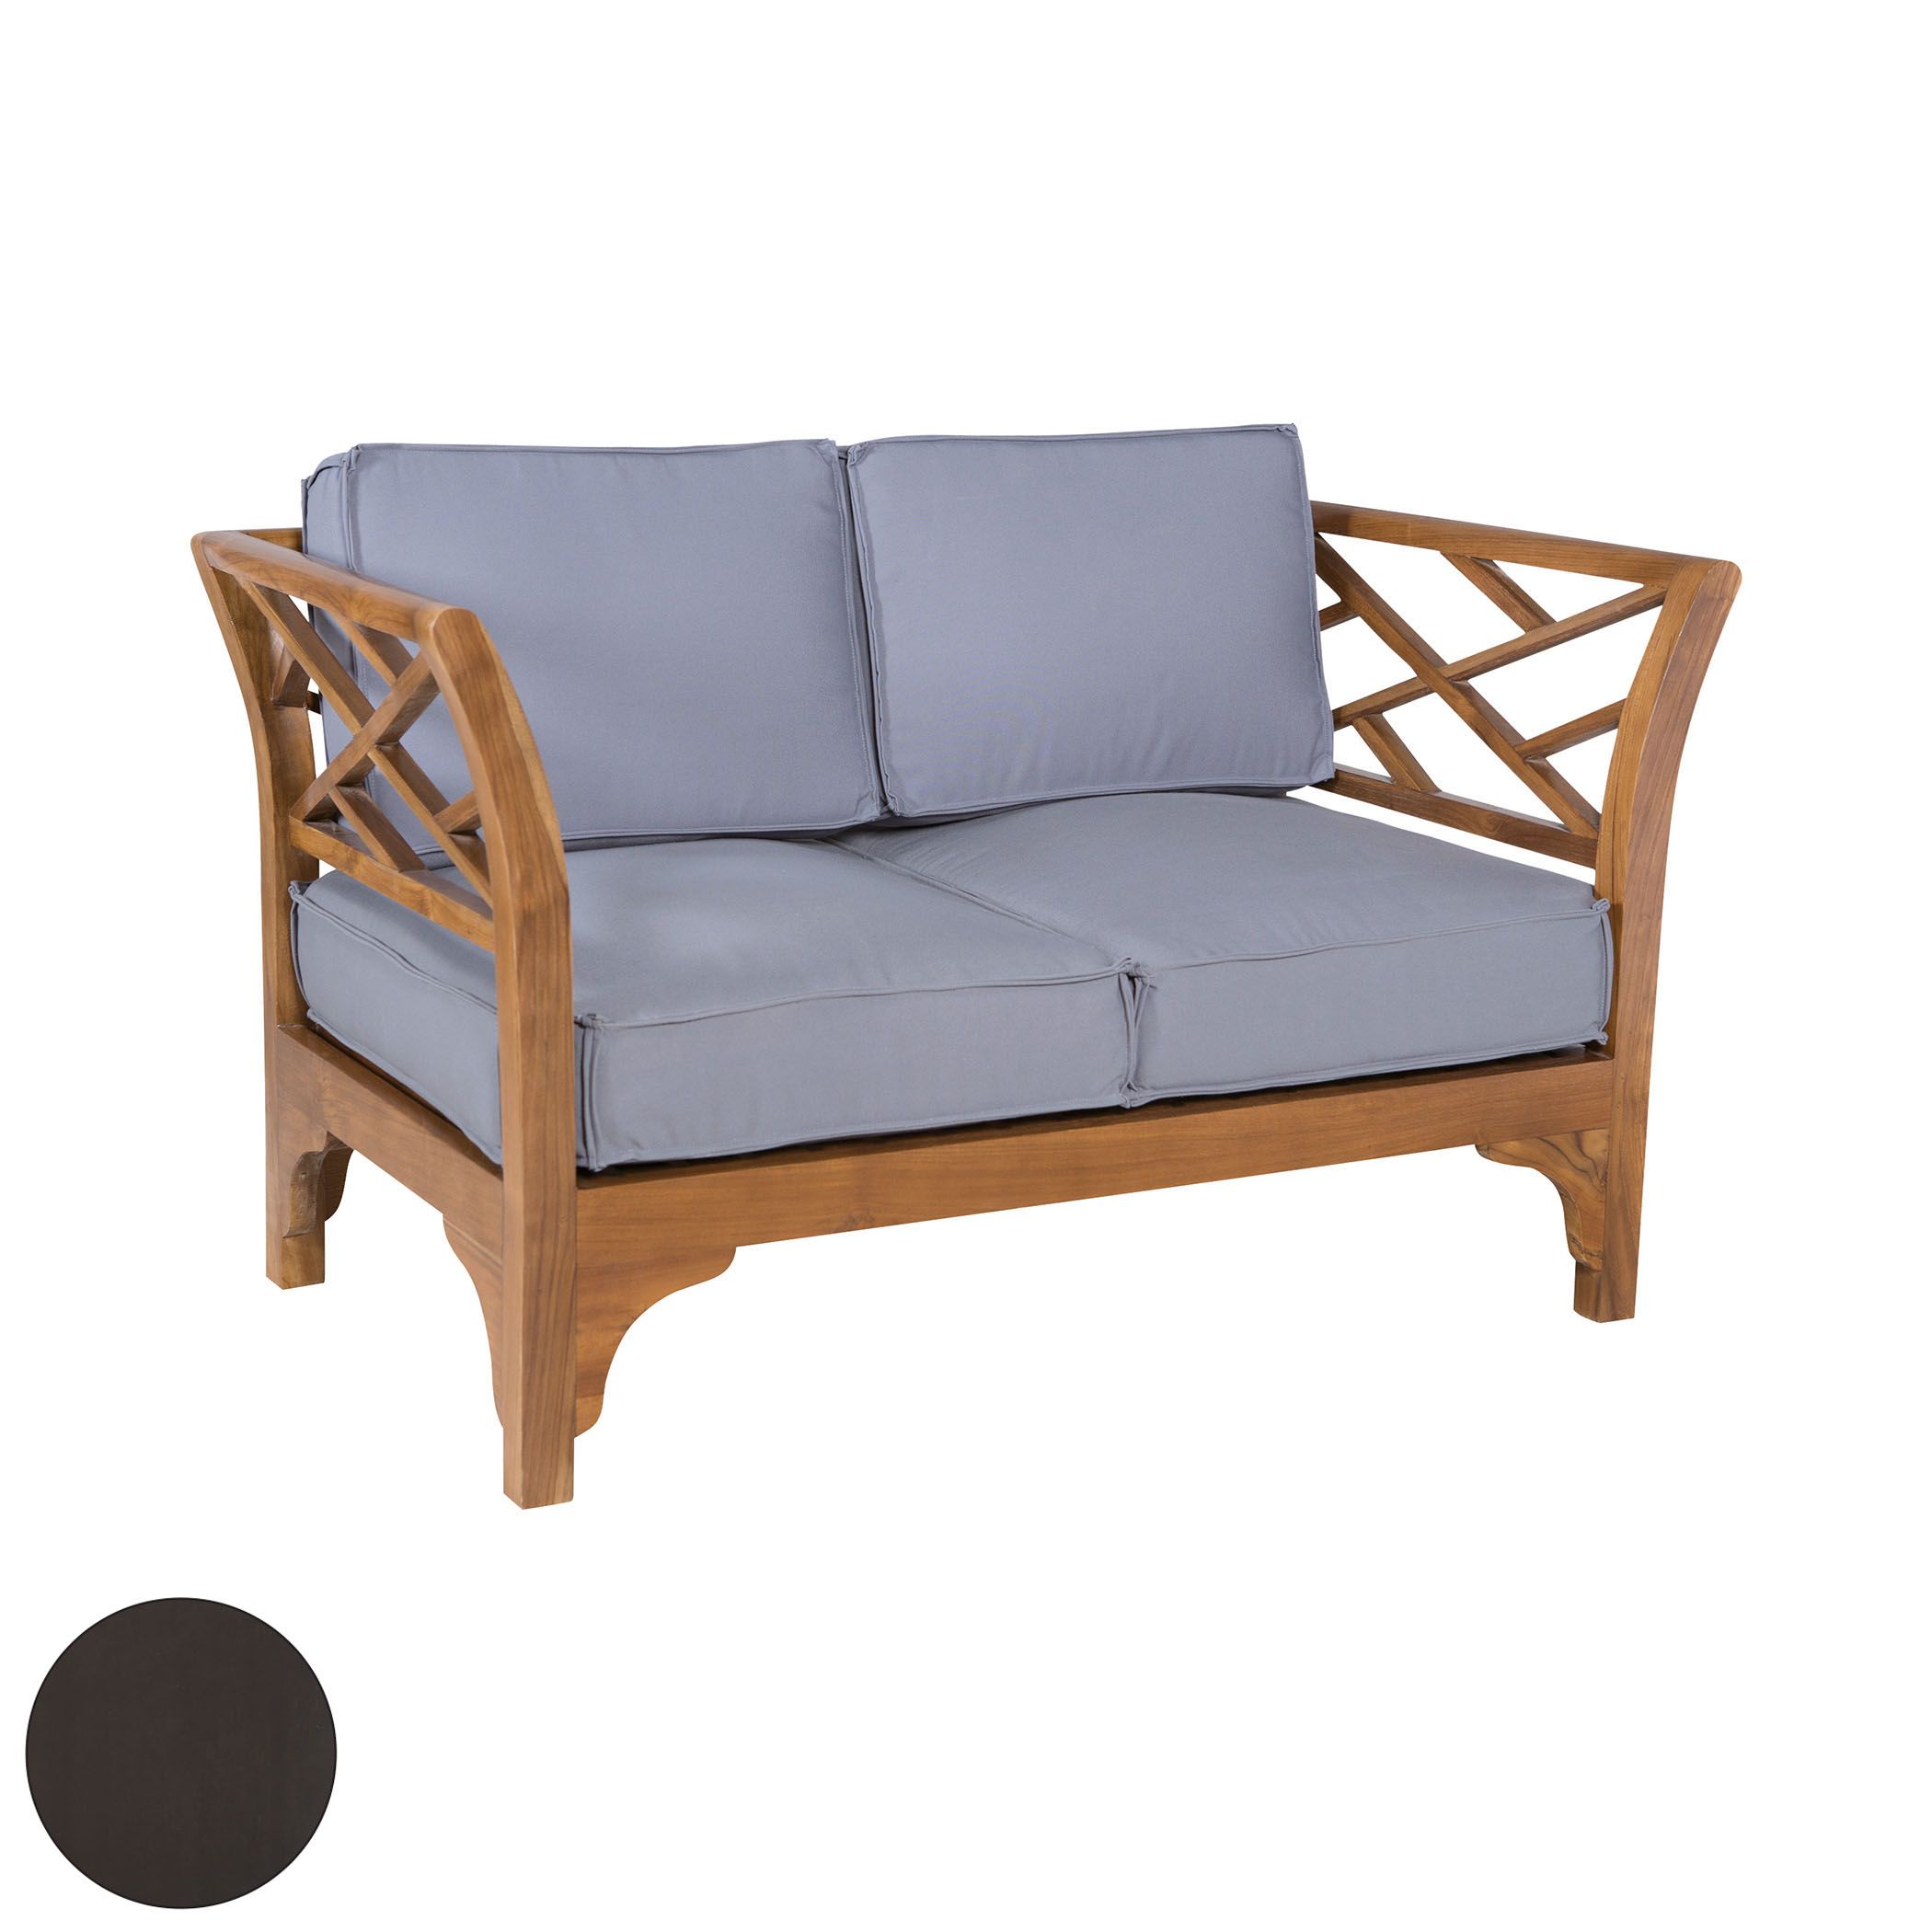 Patio Branch Love Seat 6517504AS | ELK Home